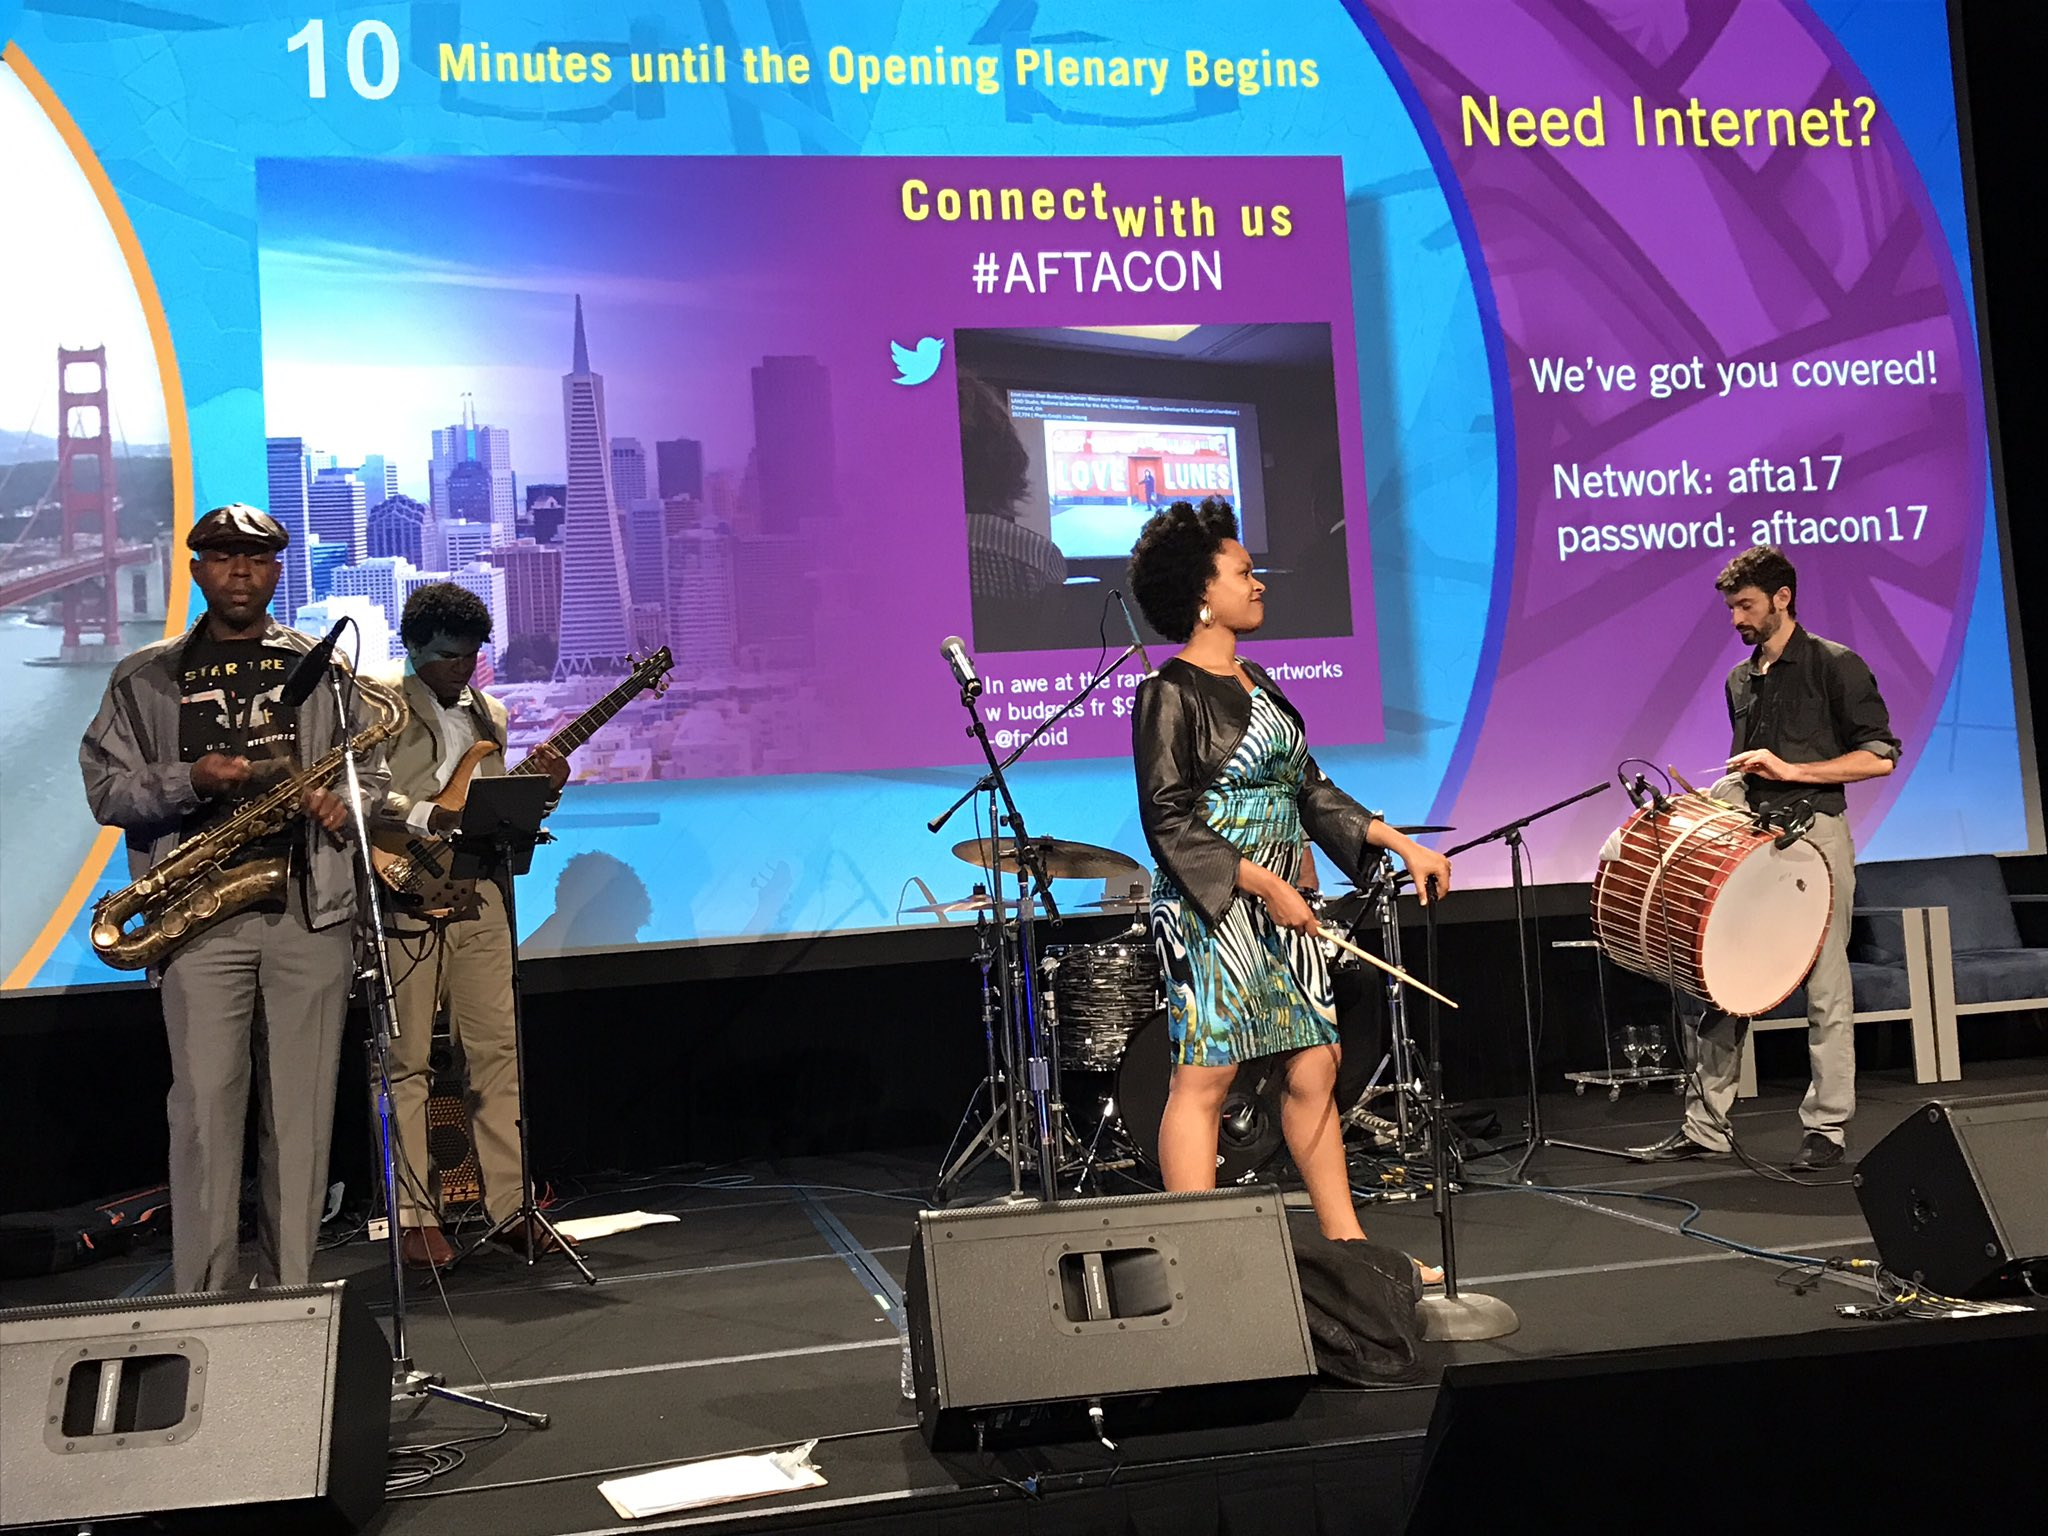 It's sound check time for the opening session of #AFTACON with @meklitmusic https://t.co/3c9ZlLaDq5